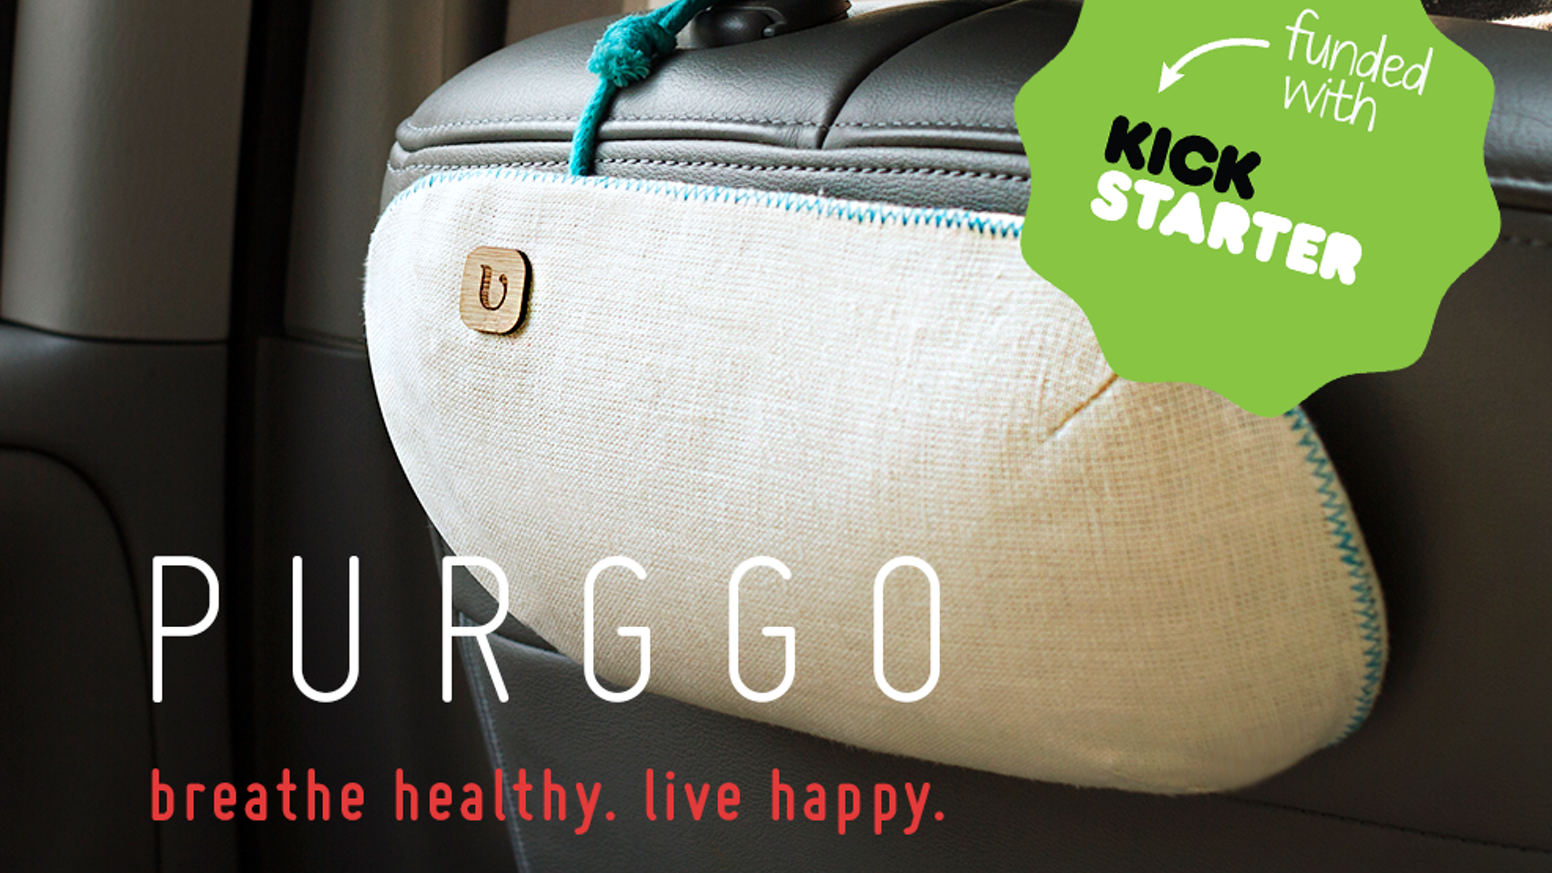 PURGGO Car Air Freshener - Absorbs Odor. Fragrance & Scent Free. Lasts 365+ Days - Made with 100% Bamboo Charcoal